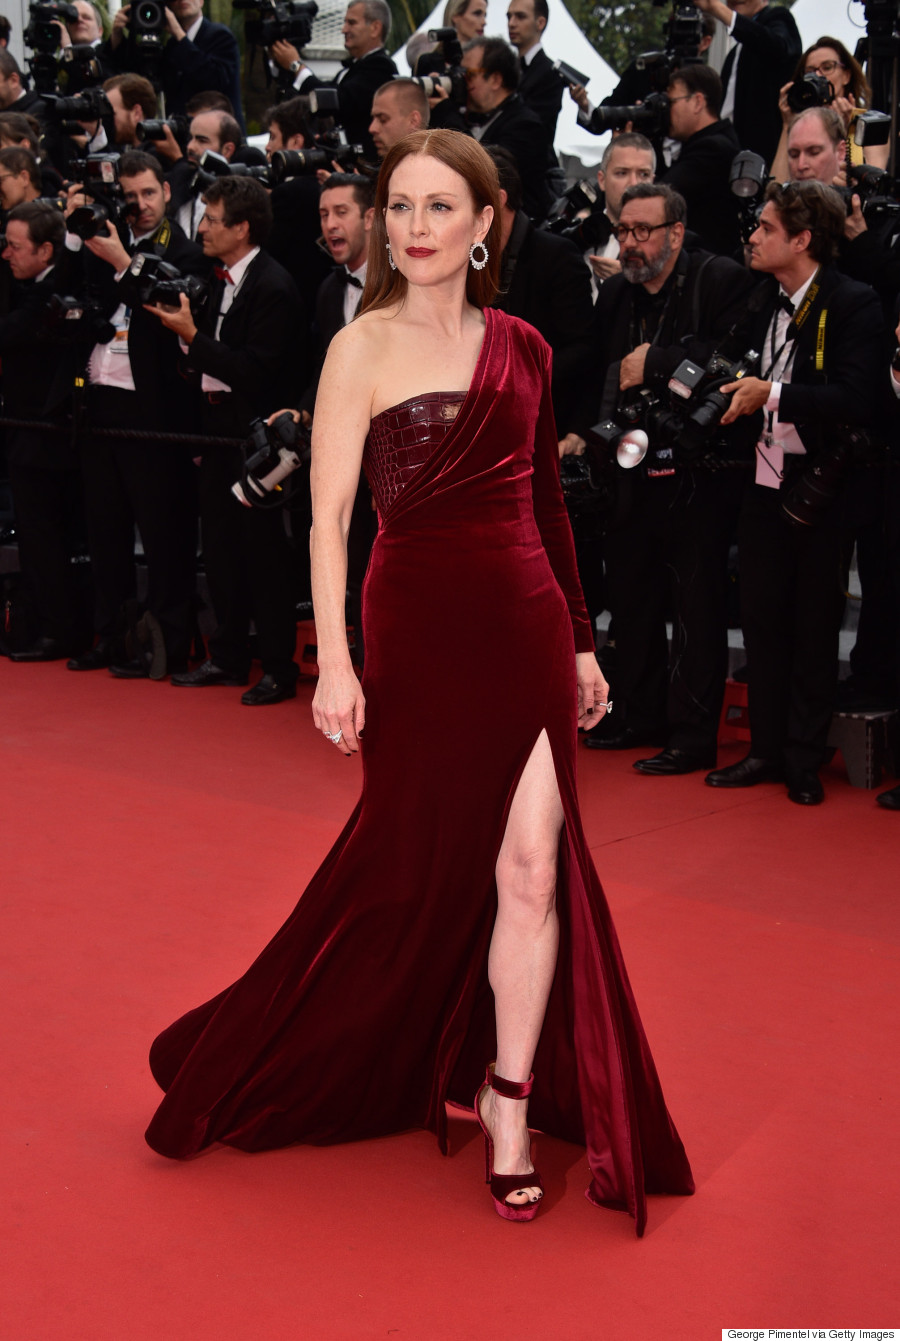 CANNES, FRANCE - MAY 14: Julianne Moore _red hair_red dress